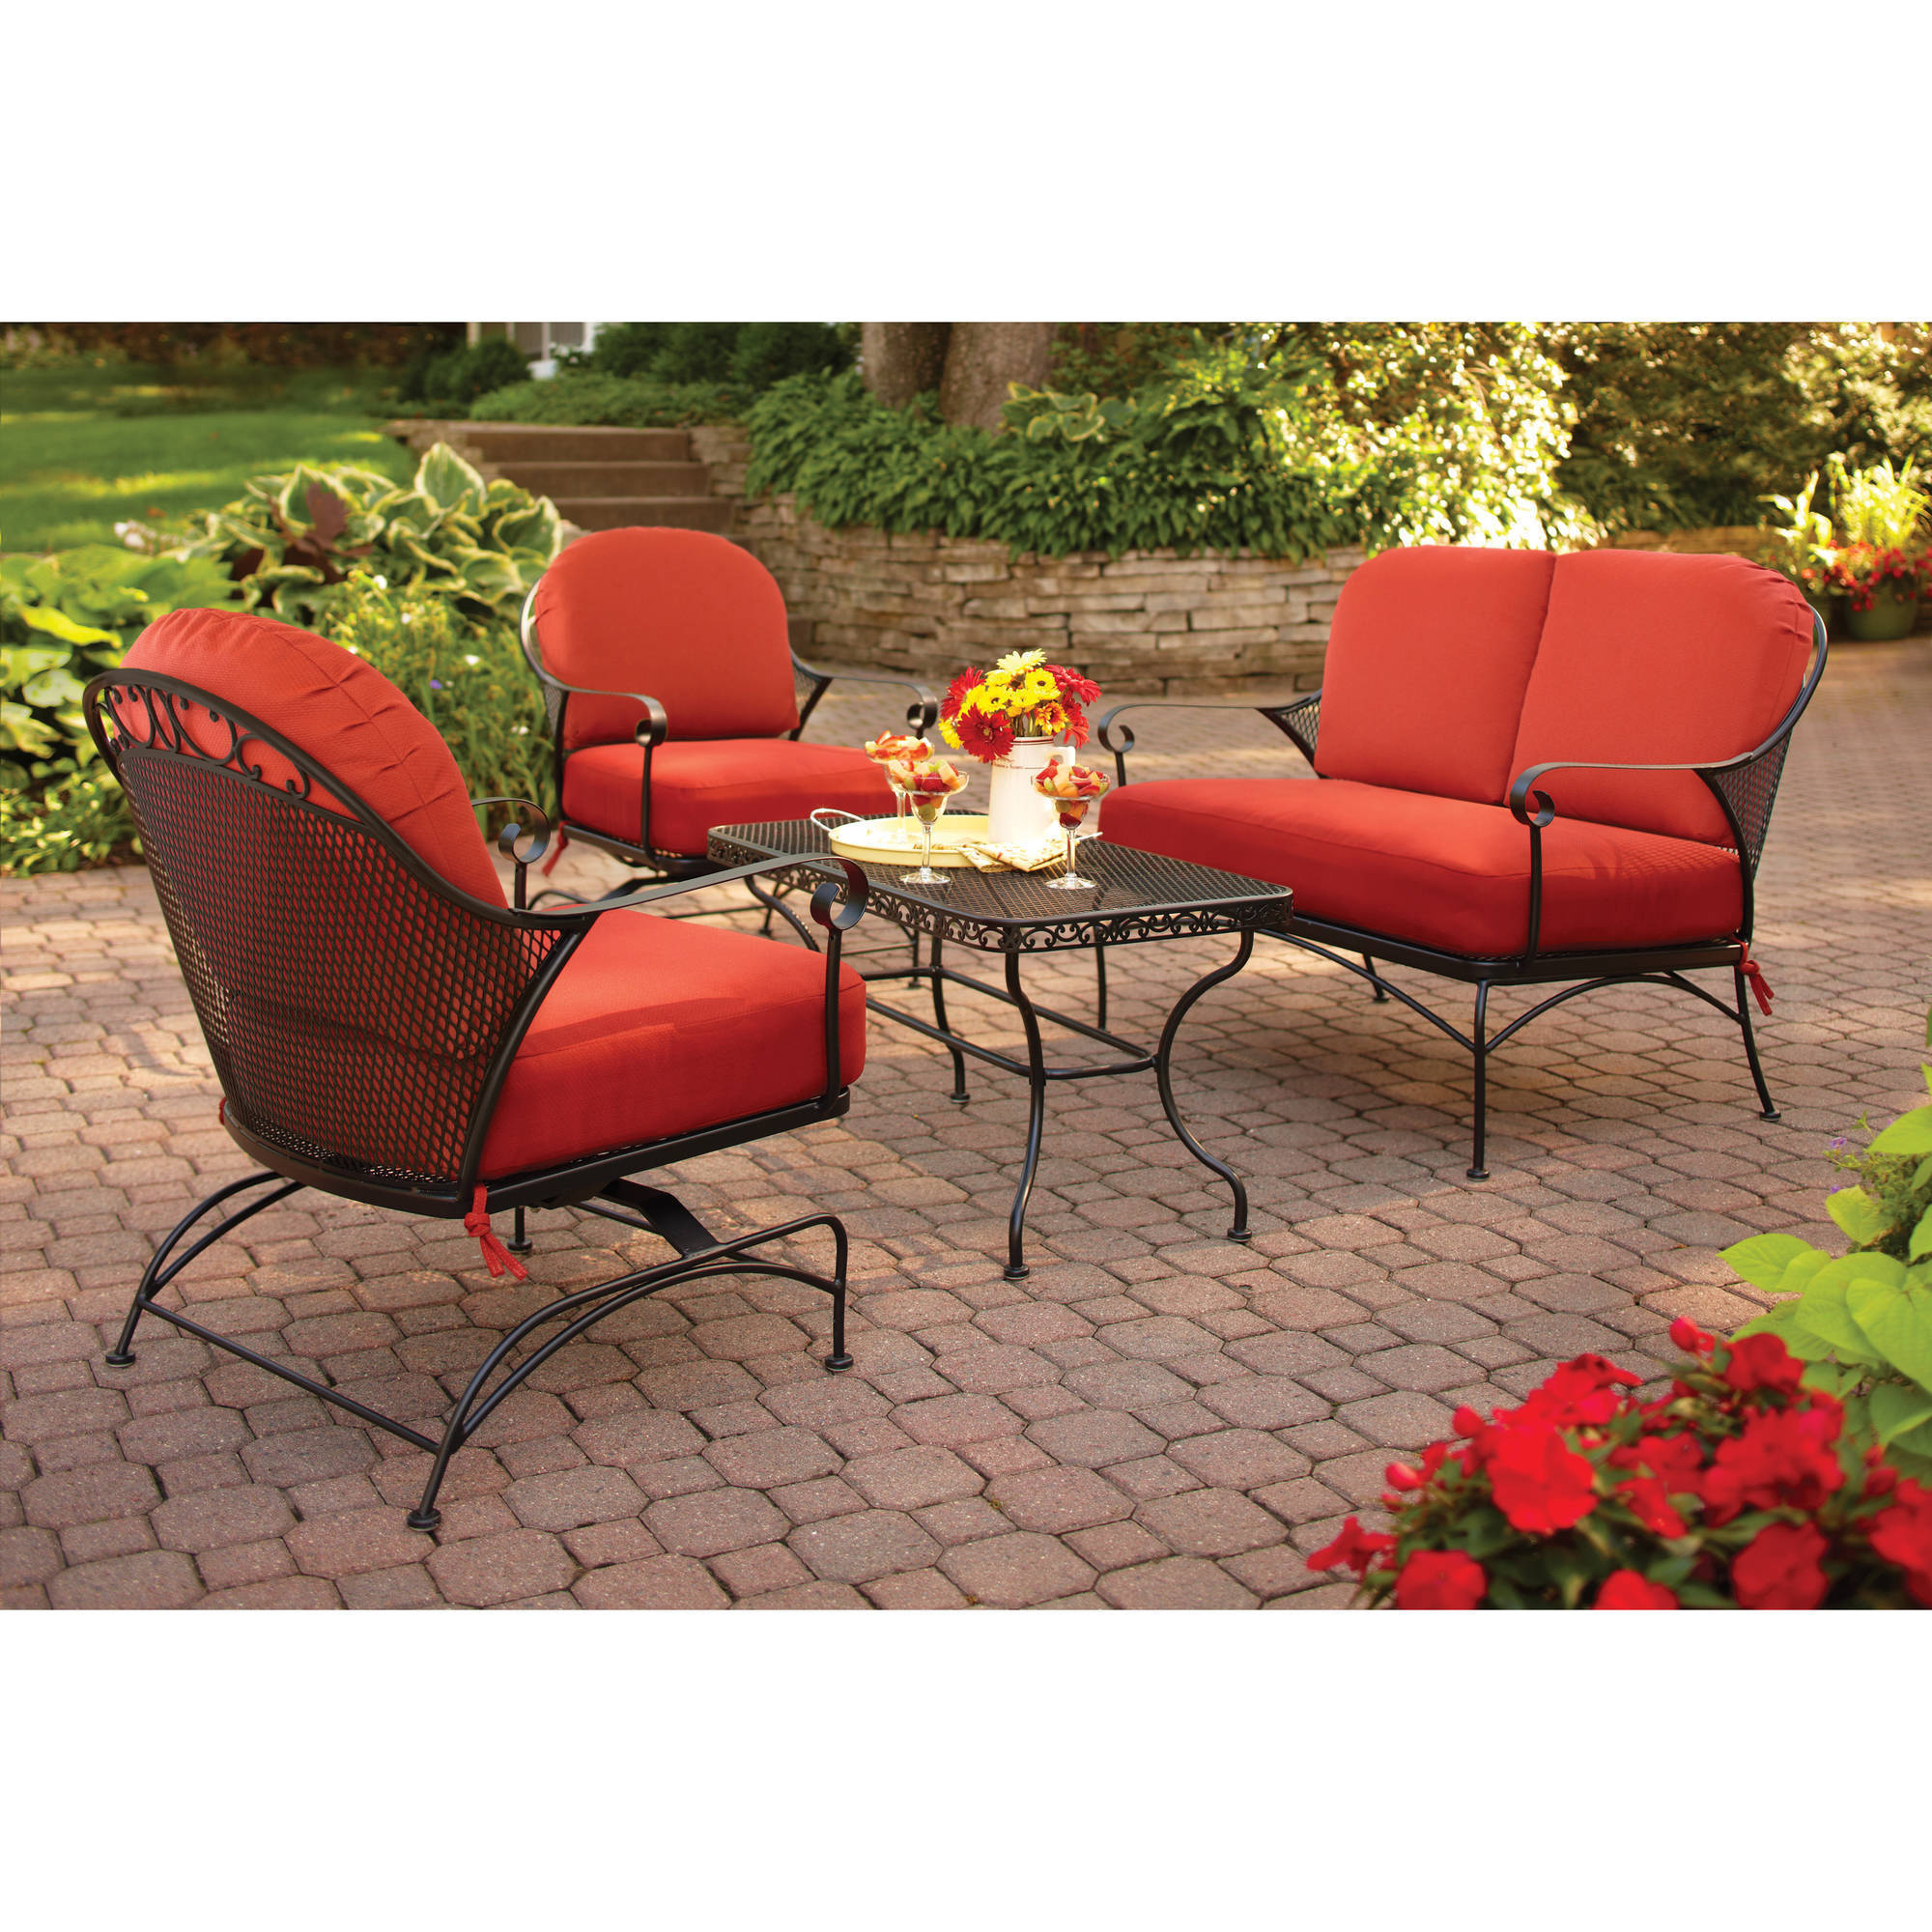 Better Homes And Gardens Clayton Court 4 Piece Patio Conversation Set    Walmart.com